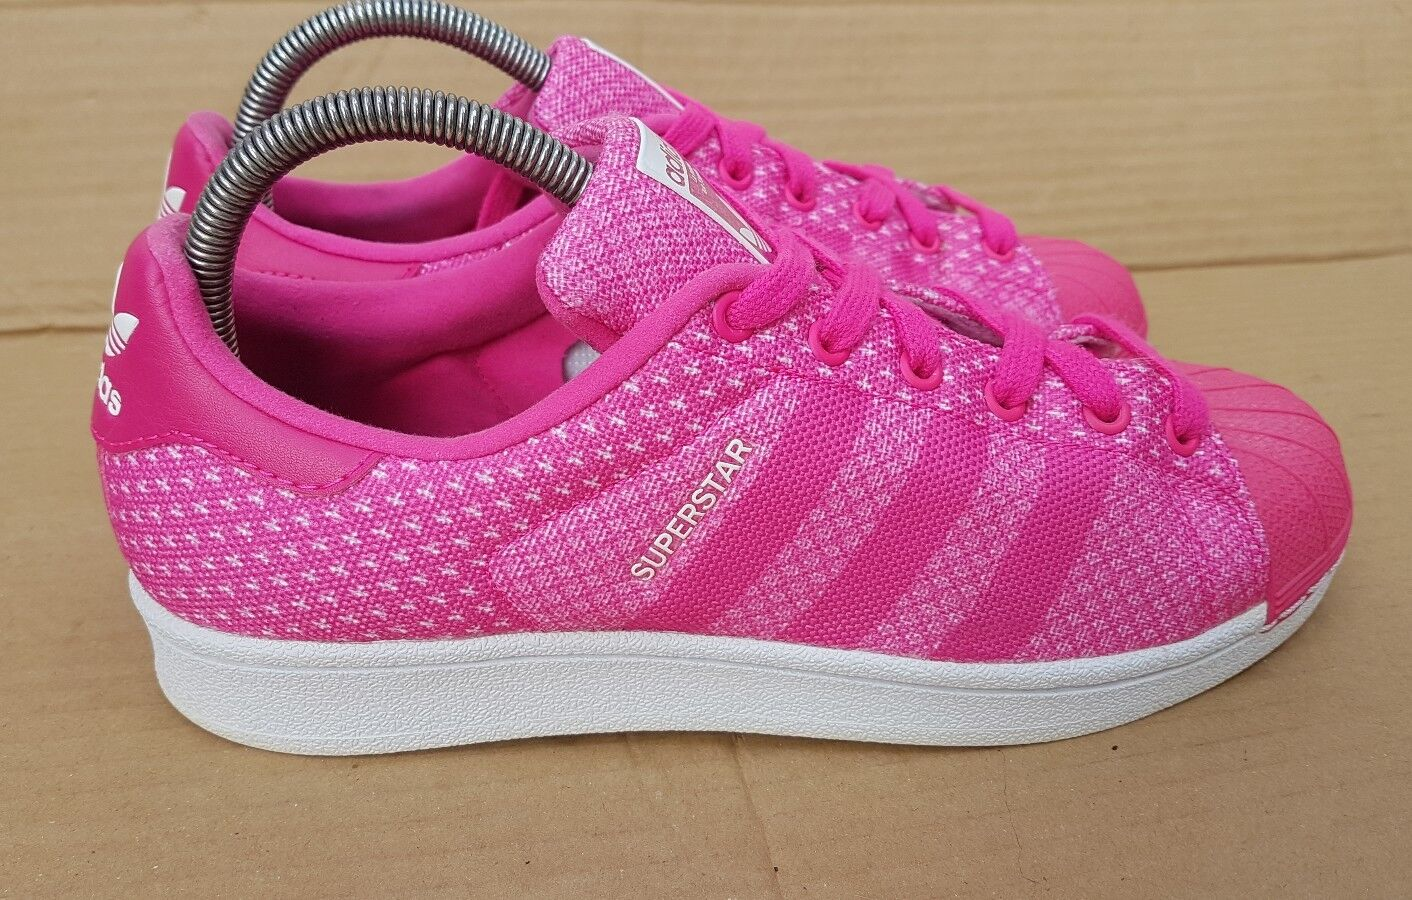 ADIDAS SUPERSTAR SHELL TOE TRAINERS PINK WEAVE IN SIZE 5.5 UK IMMACULATE